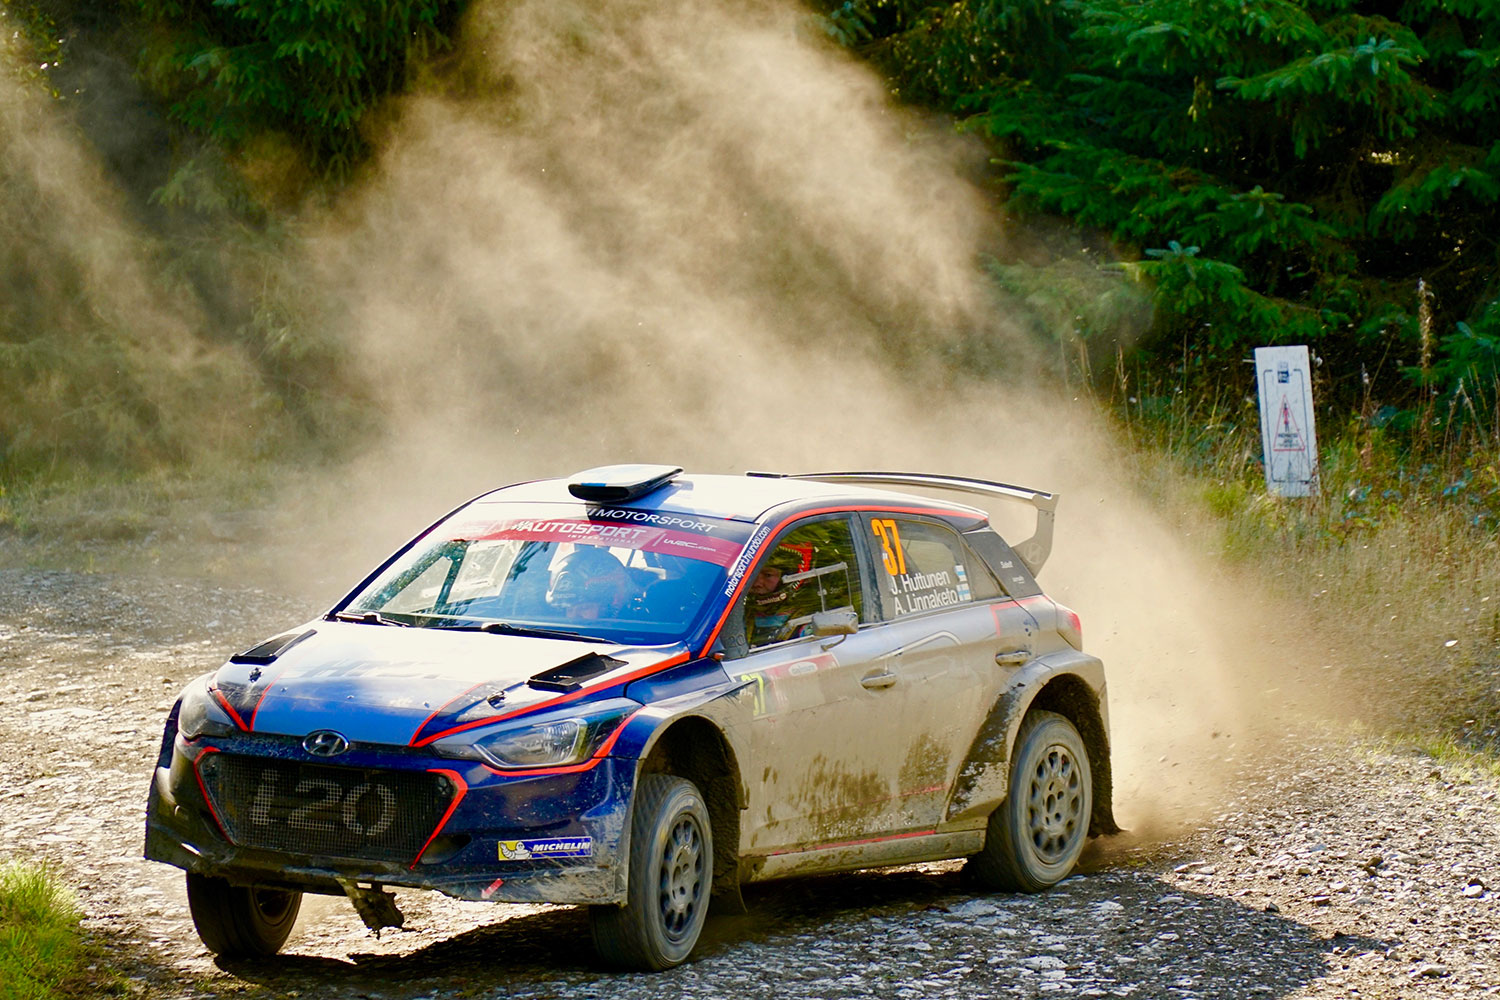 CUSTOMER CASE STUDY: Filming the World Rally Championship with the Sony a6300 and G Master 100-400mm F4.5-5.6 OSS